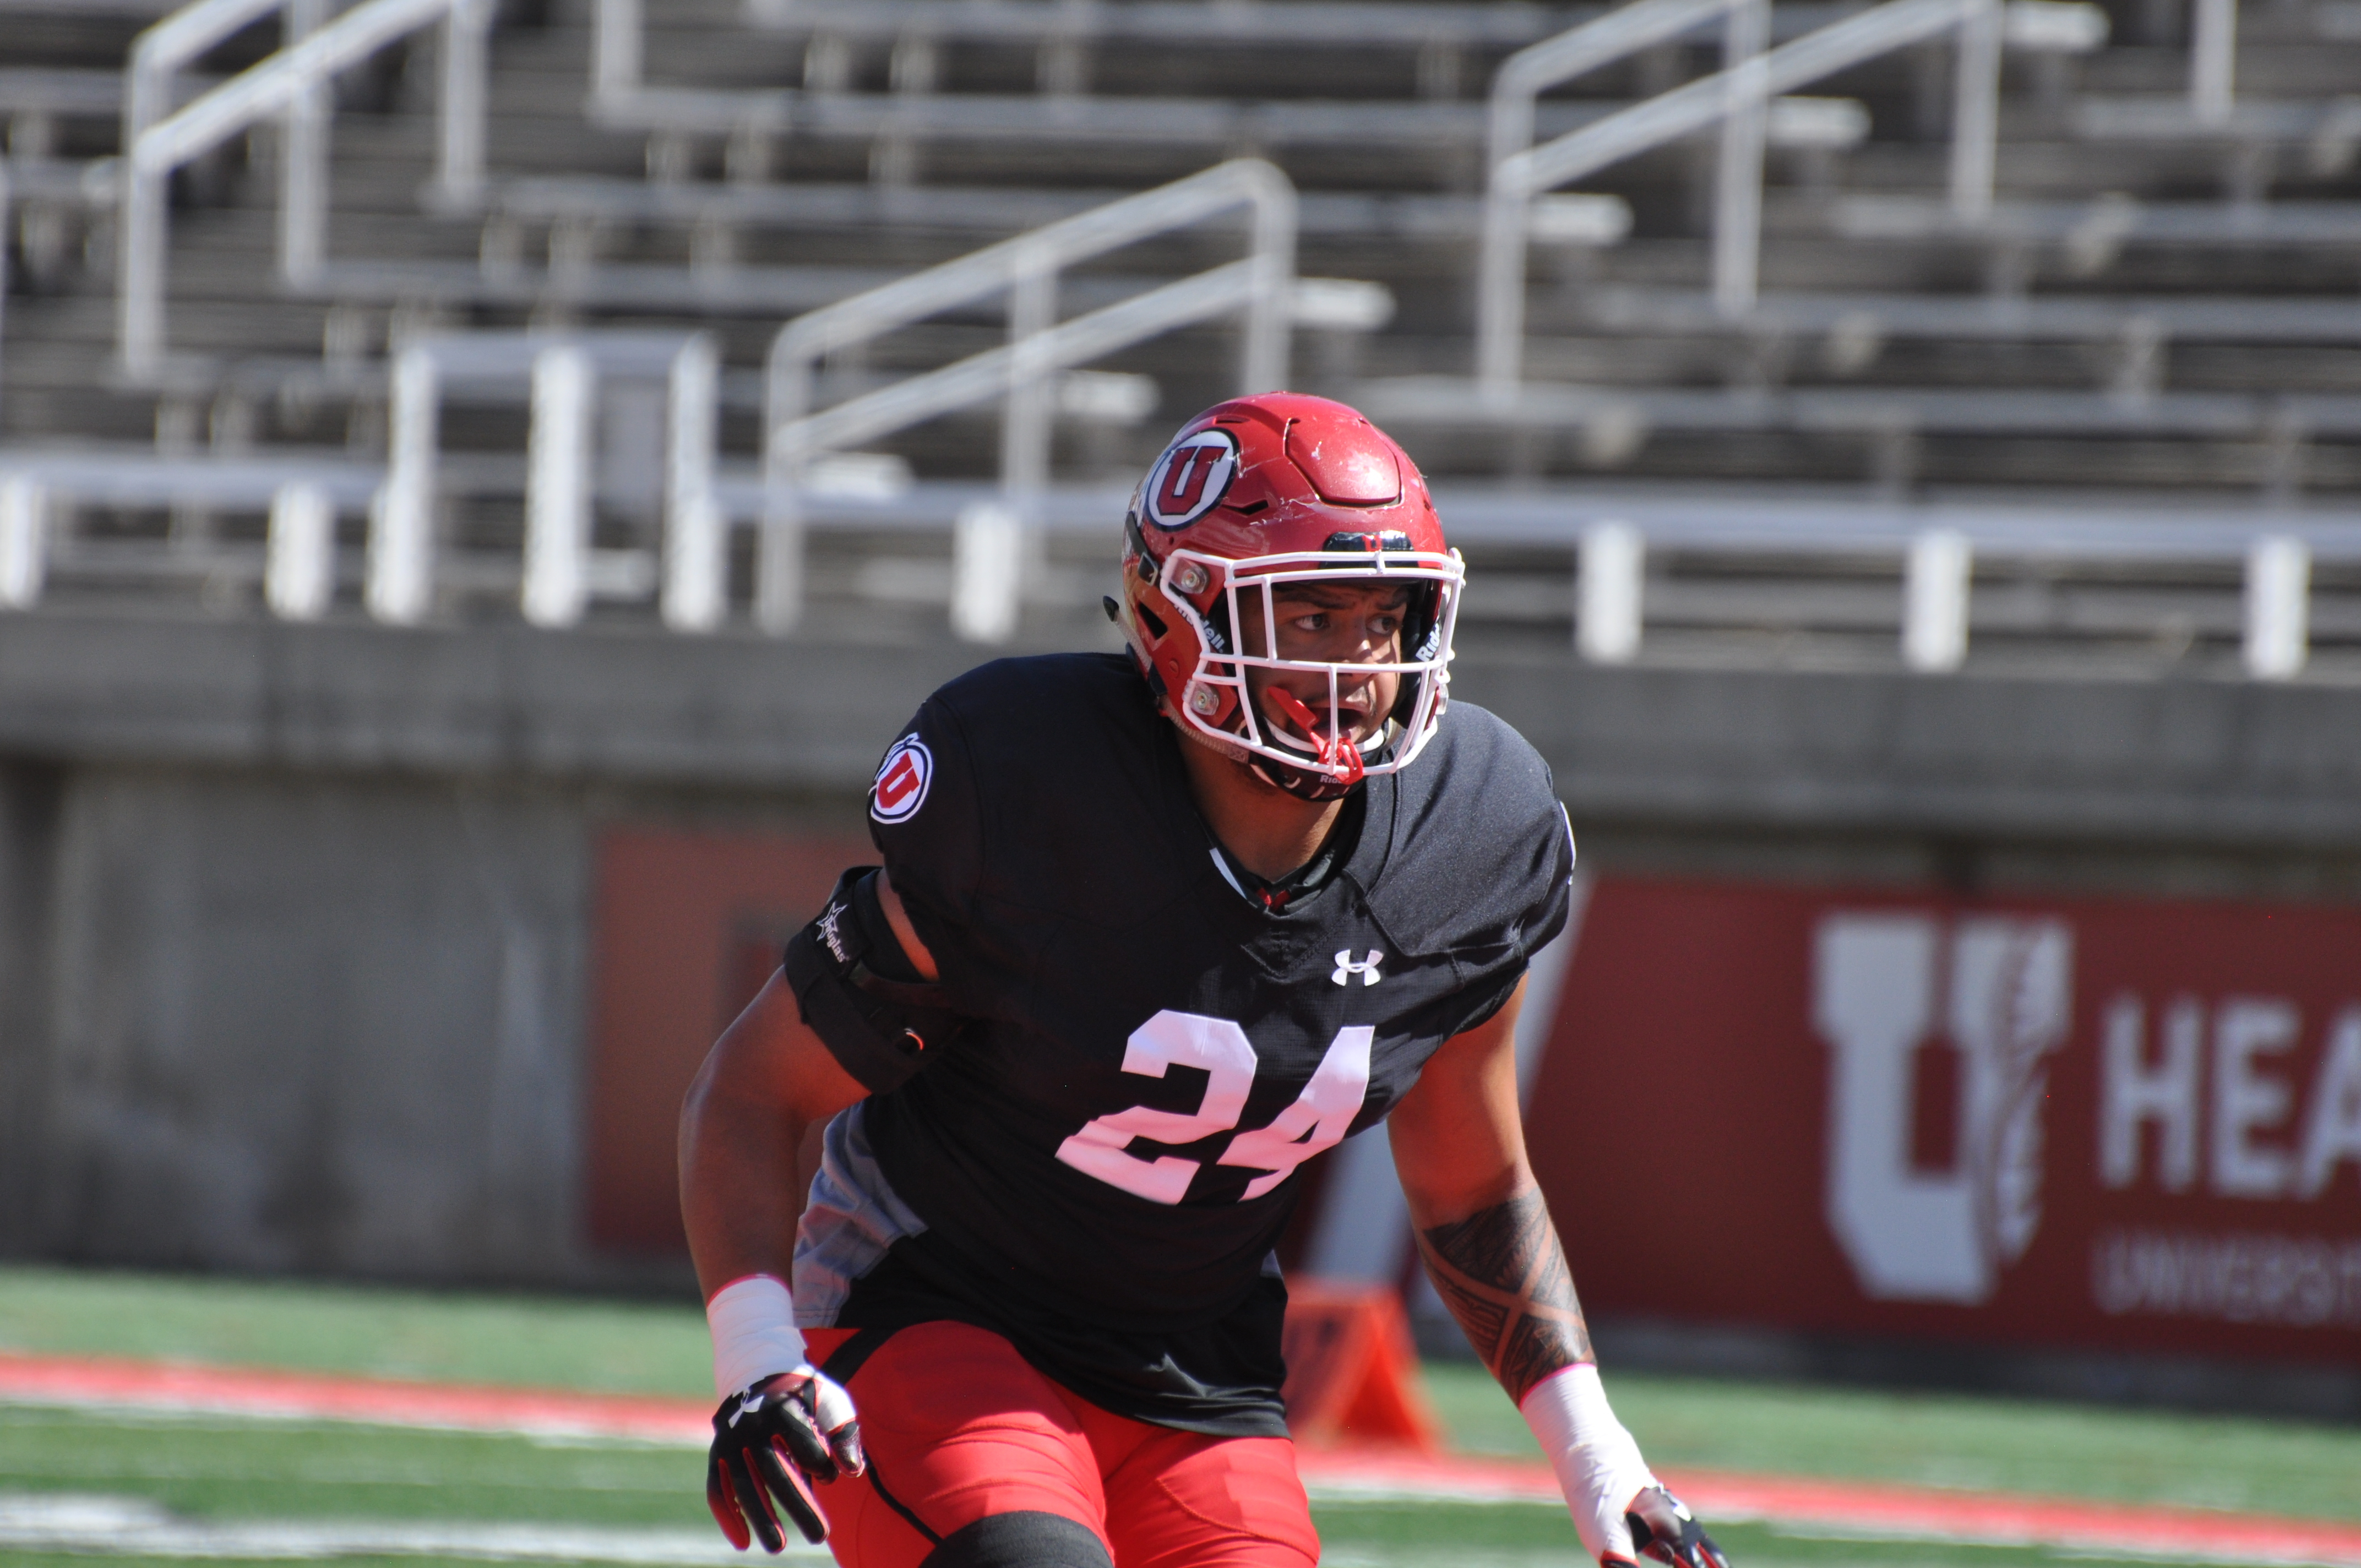 Utah linebacker Sione Lund goes through practice at Rice-Eccles Stadium on Wednesday, Aug. 14, 2019.